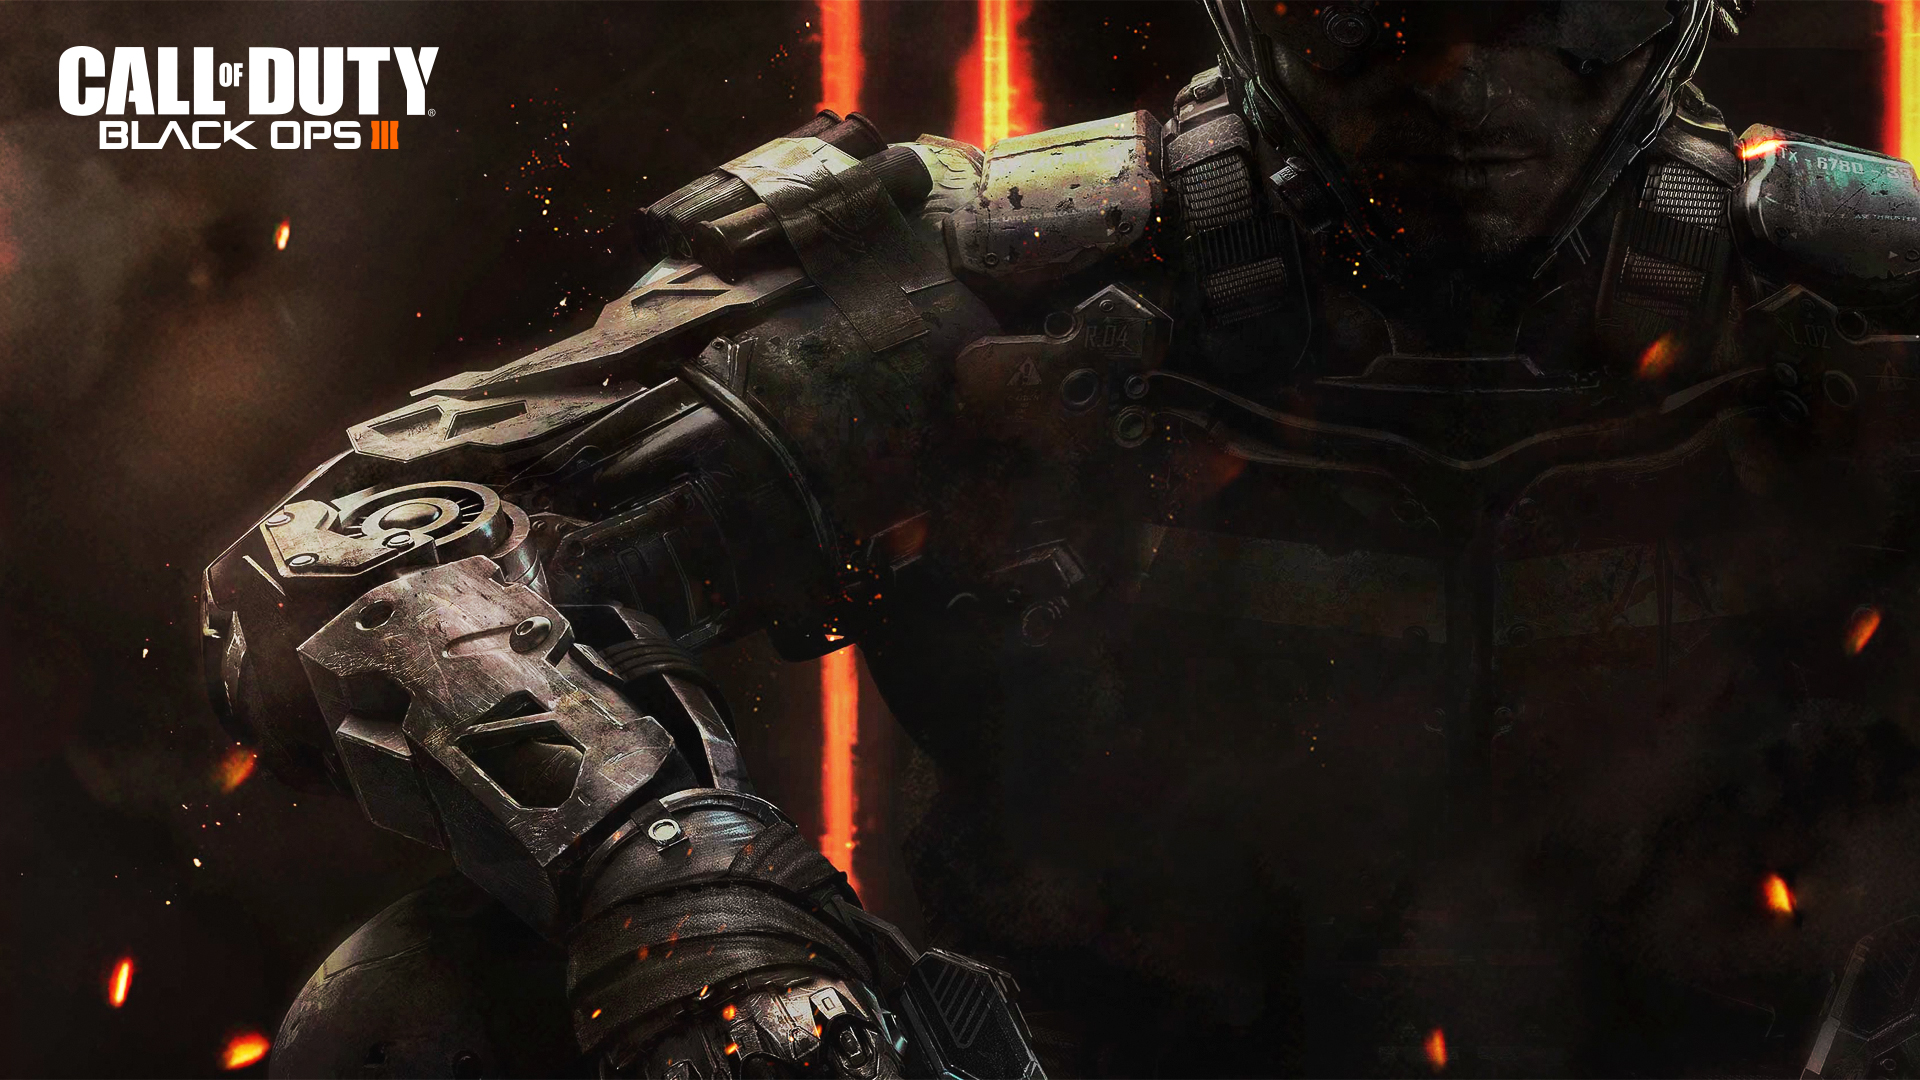 Free Download Call Of Duty Black Ops Iii Hd Wallpaper 23 1920 X